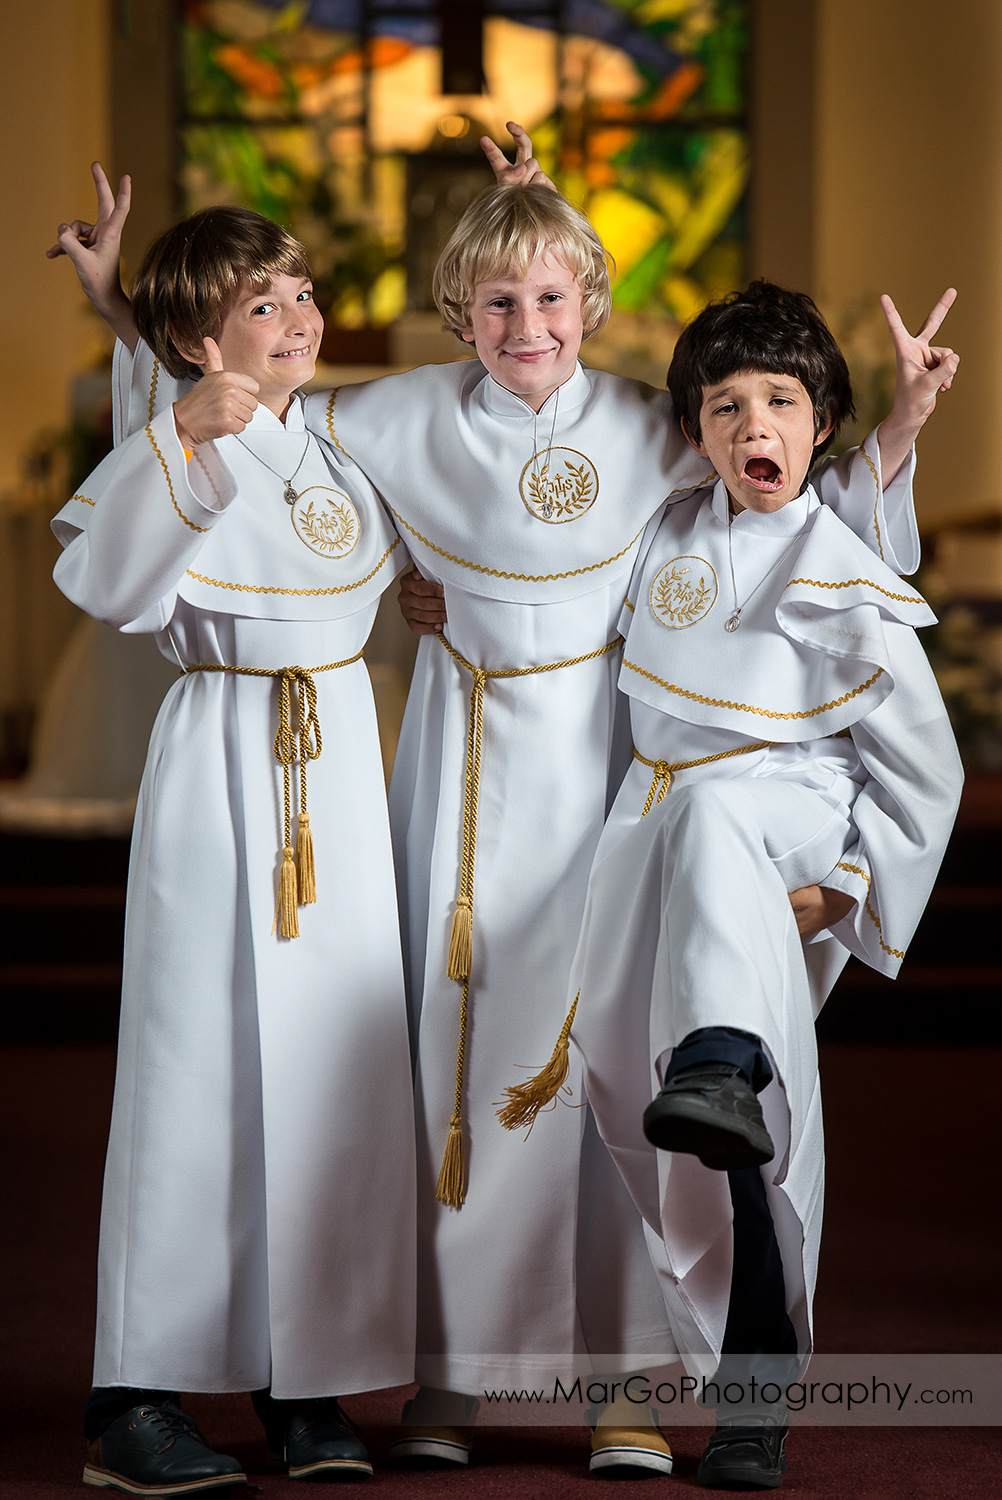 three first communion boys in white albs standing in San Jose church middle aisle